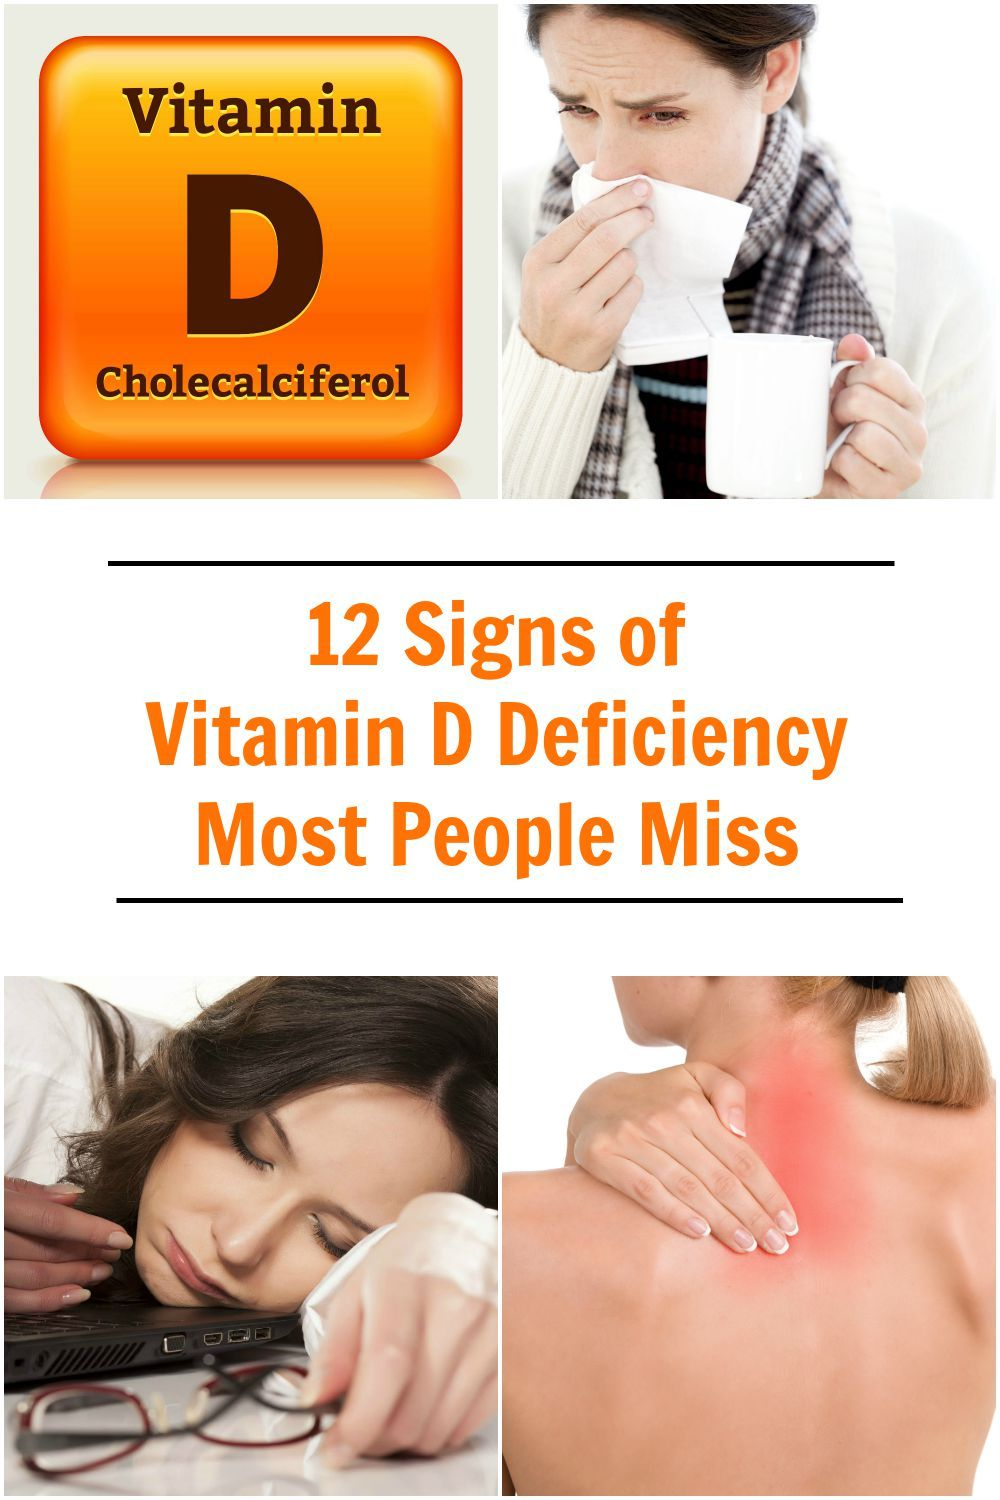 Best 25+ Vitamin D Deficiency Ideas On Pinterest  Vit D. Medication Depression Inclusion In Education. Klm Royal Dutch Airlines Cargo Tracking. Carpet Cleaning Tempe Az West Orange Plumbers. Host Is Not Allowed To Connect To This Mysql Server. Best Lvn Schools In Los Angeles. What Does A Real Estate Attorney Do. Cisco Certifications Online Hike For A Cure. Online Dental Assistant Course